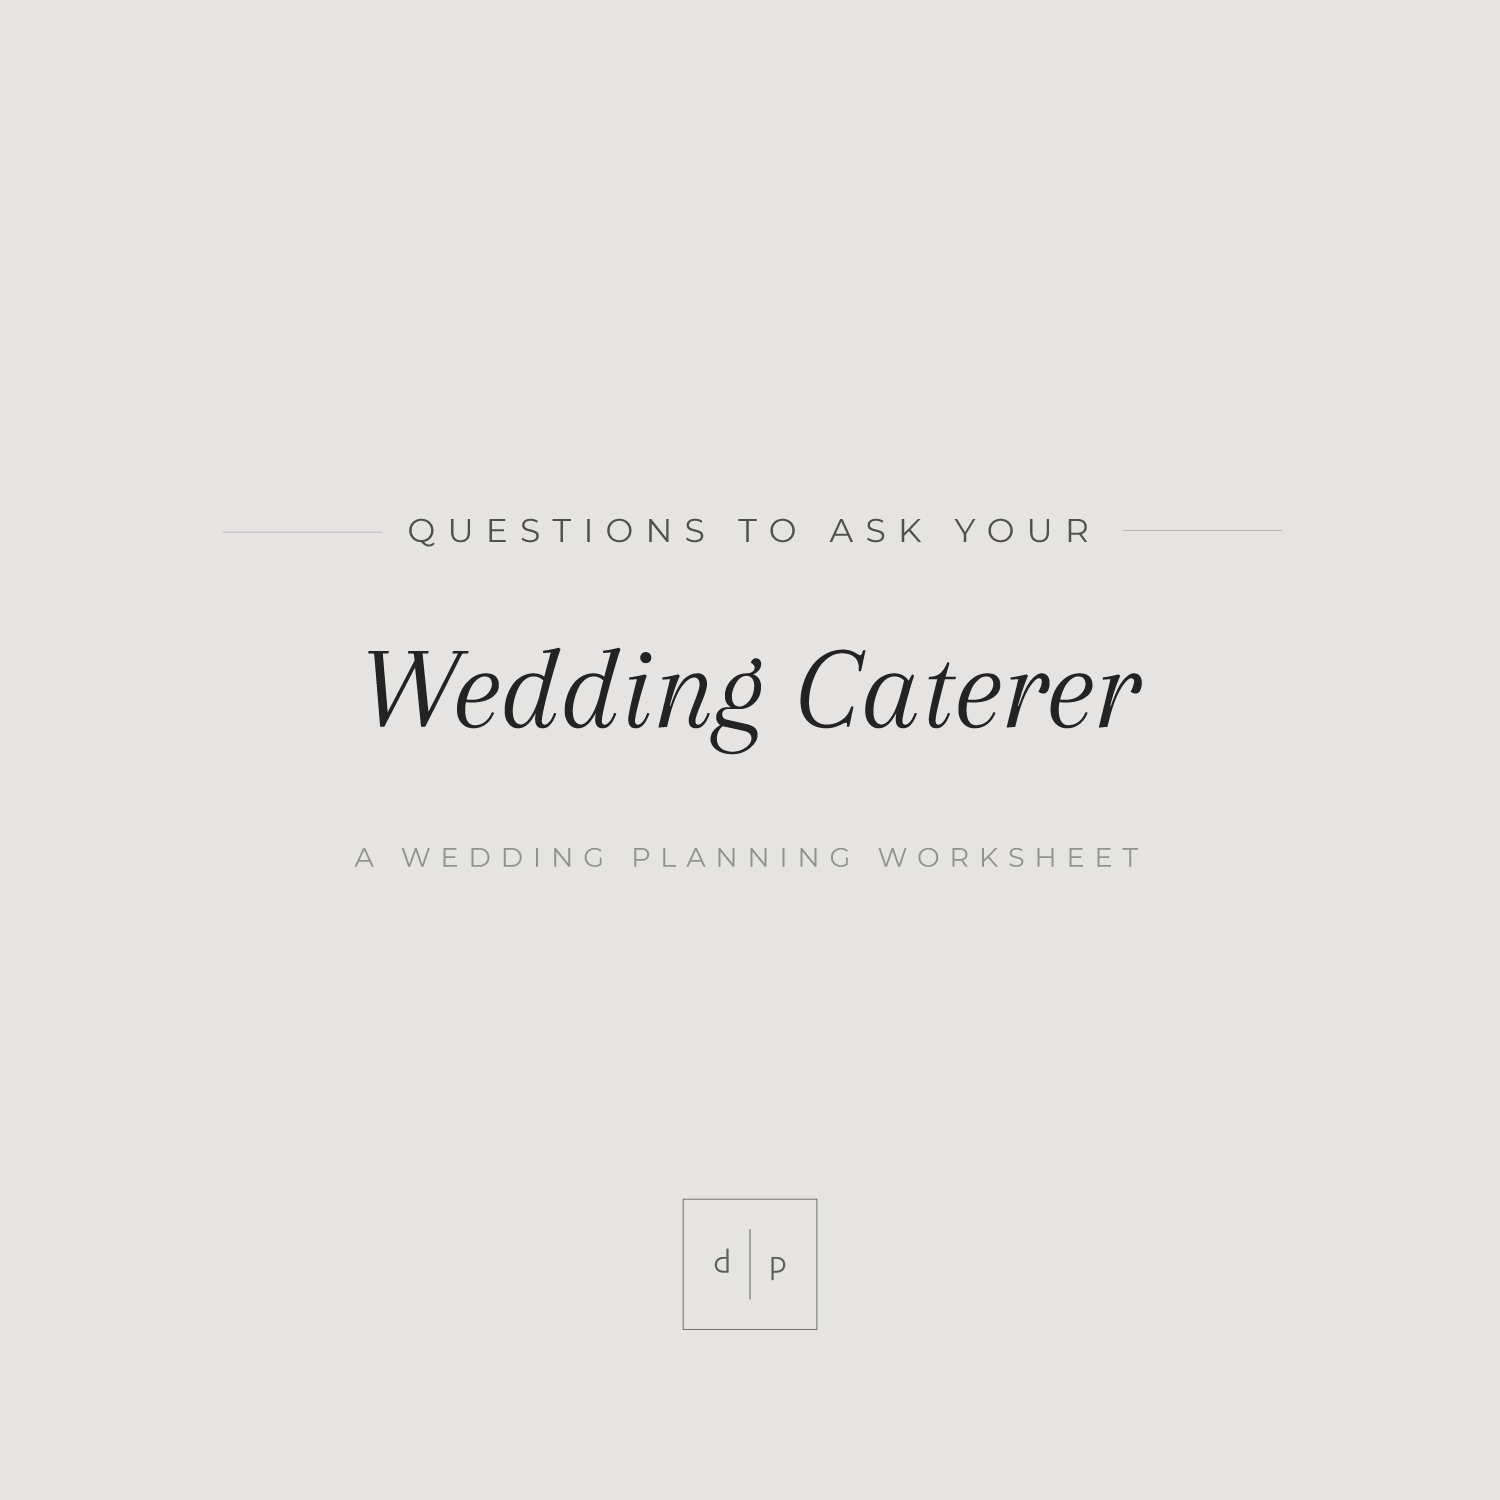 Worksheet: Questions to Ask Your Caterer